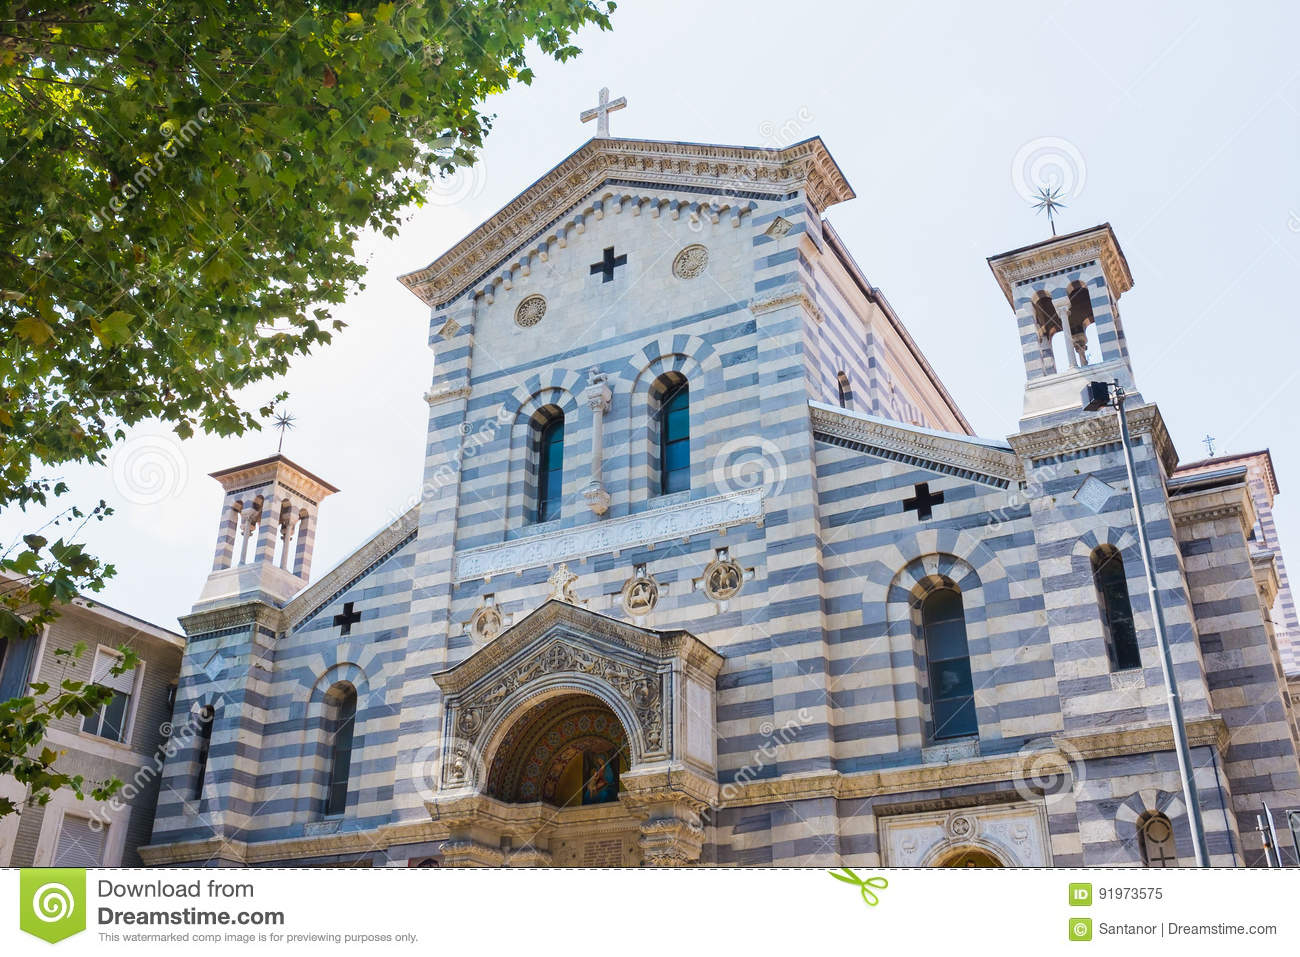 The local Church of La Spezia, Church of Our Lady of the Snows